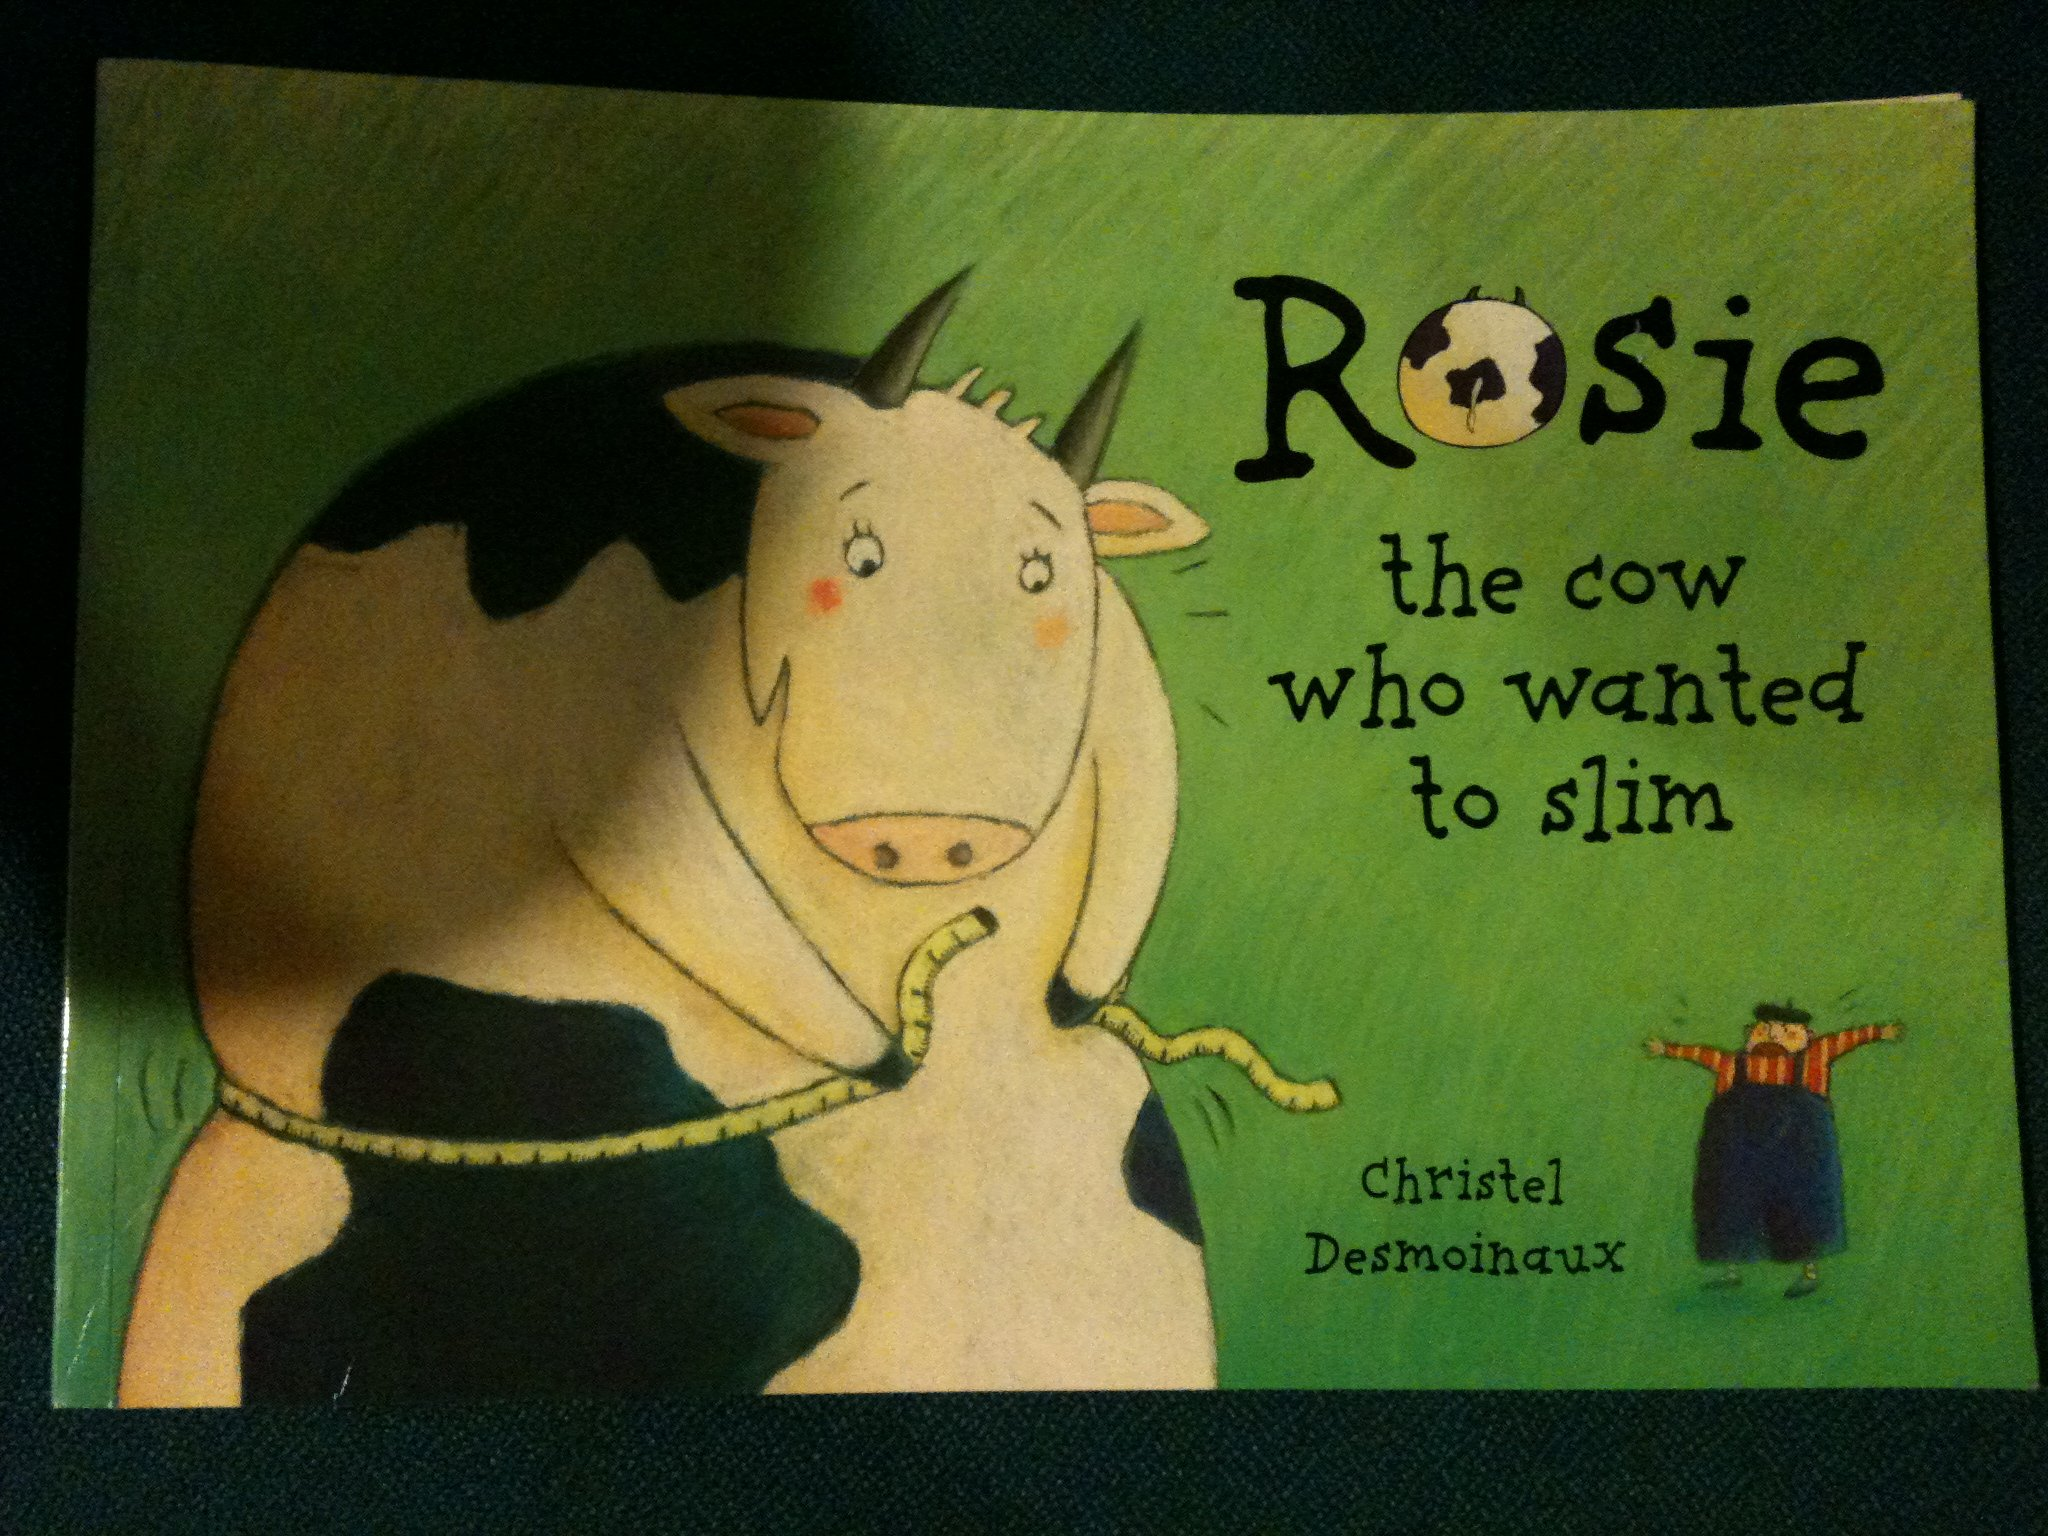 Rosie: The Cow Who Wanted to Slim